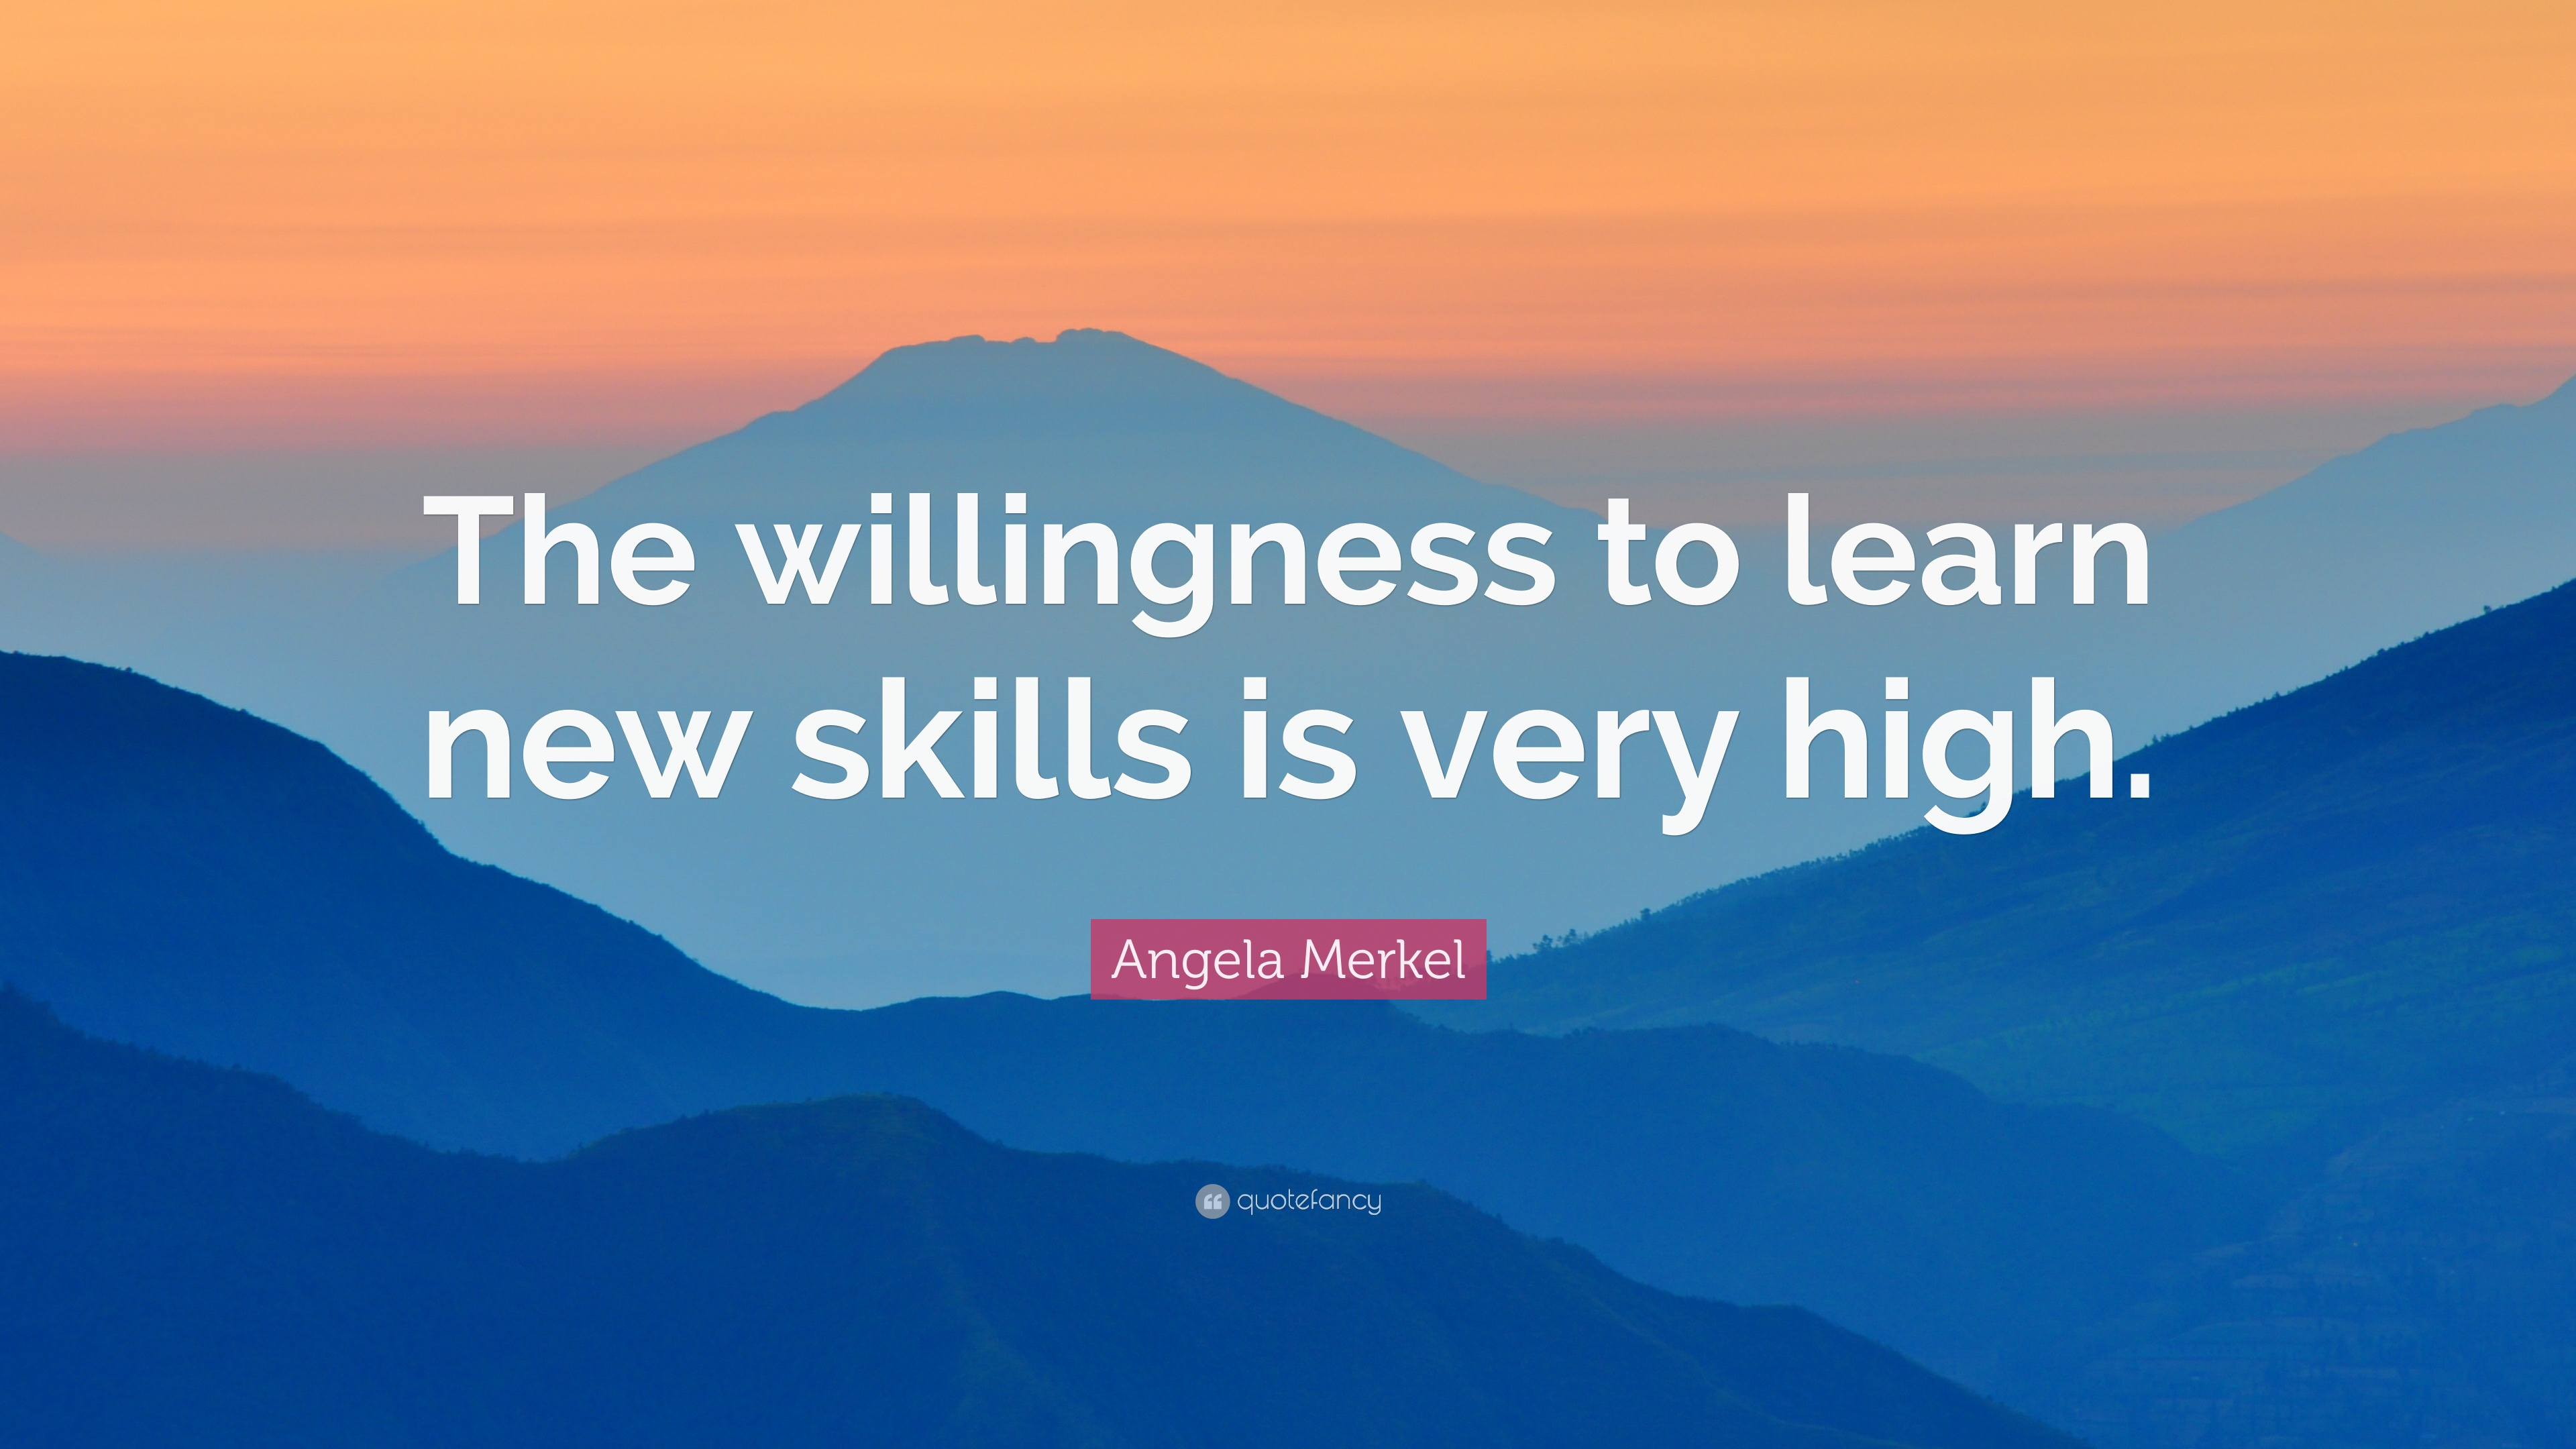 angela merkel quote the willingness to learn new skills is very angela merkel quote the willingness to learn new skills is very high